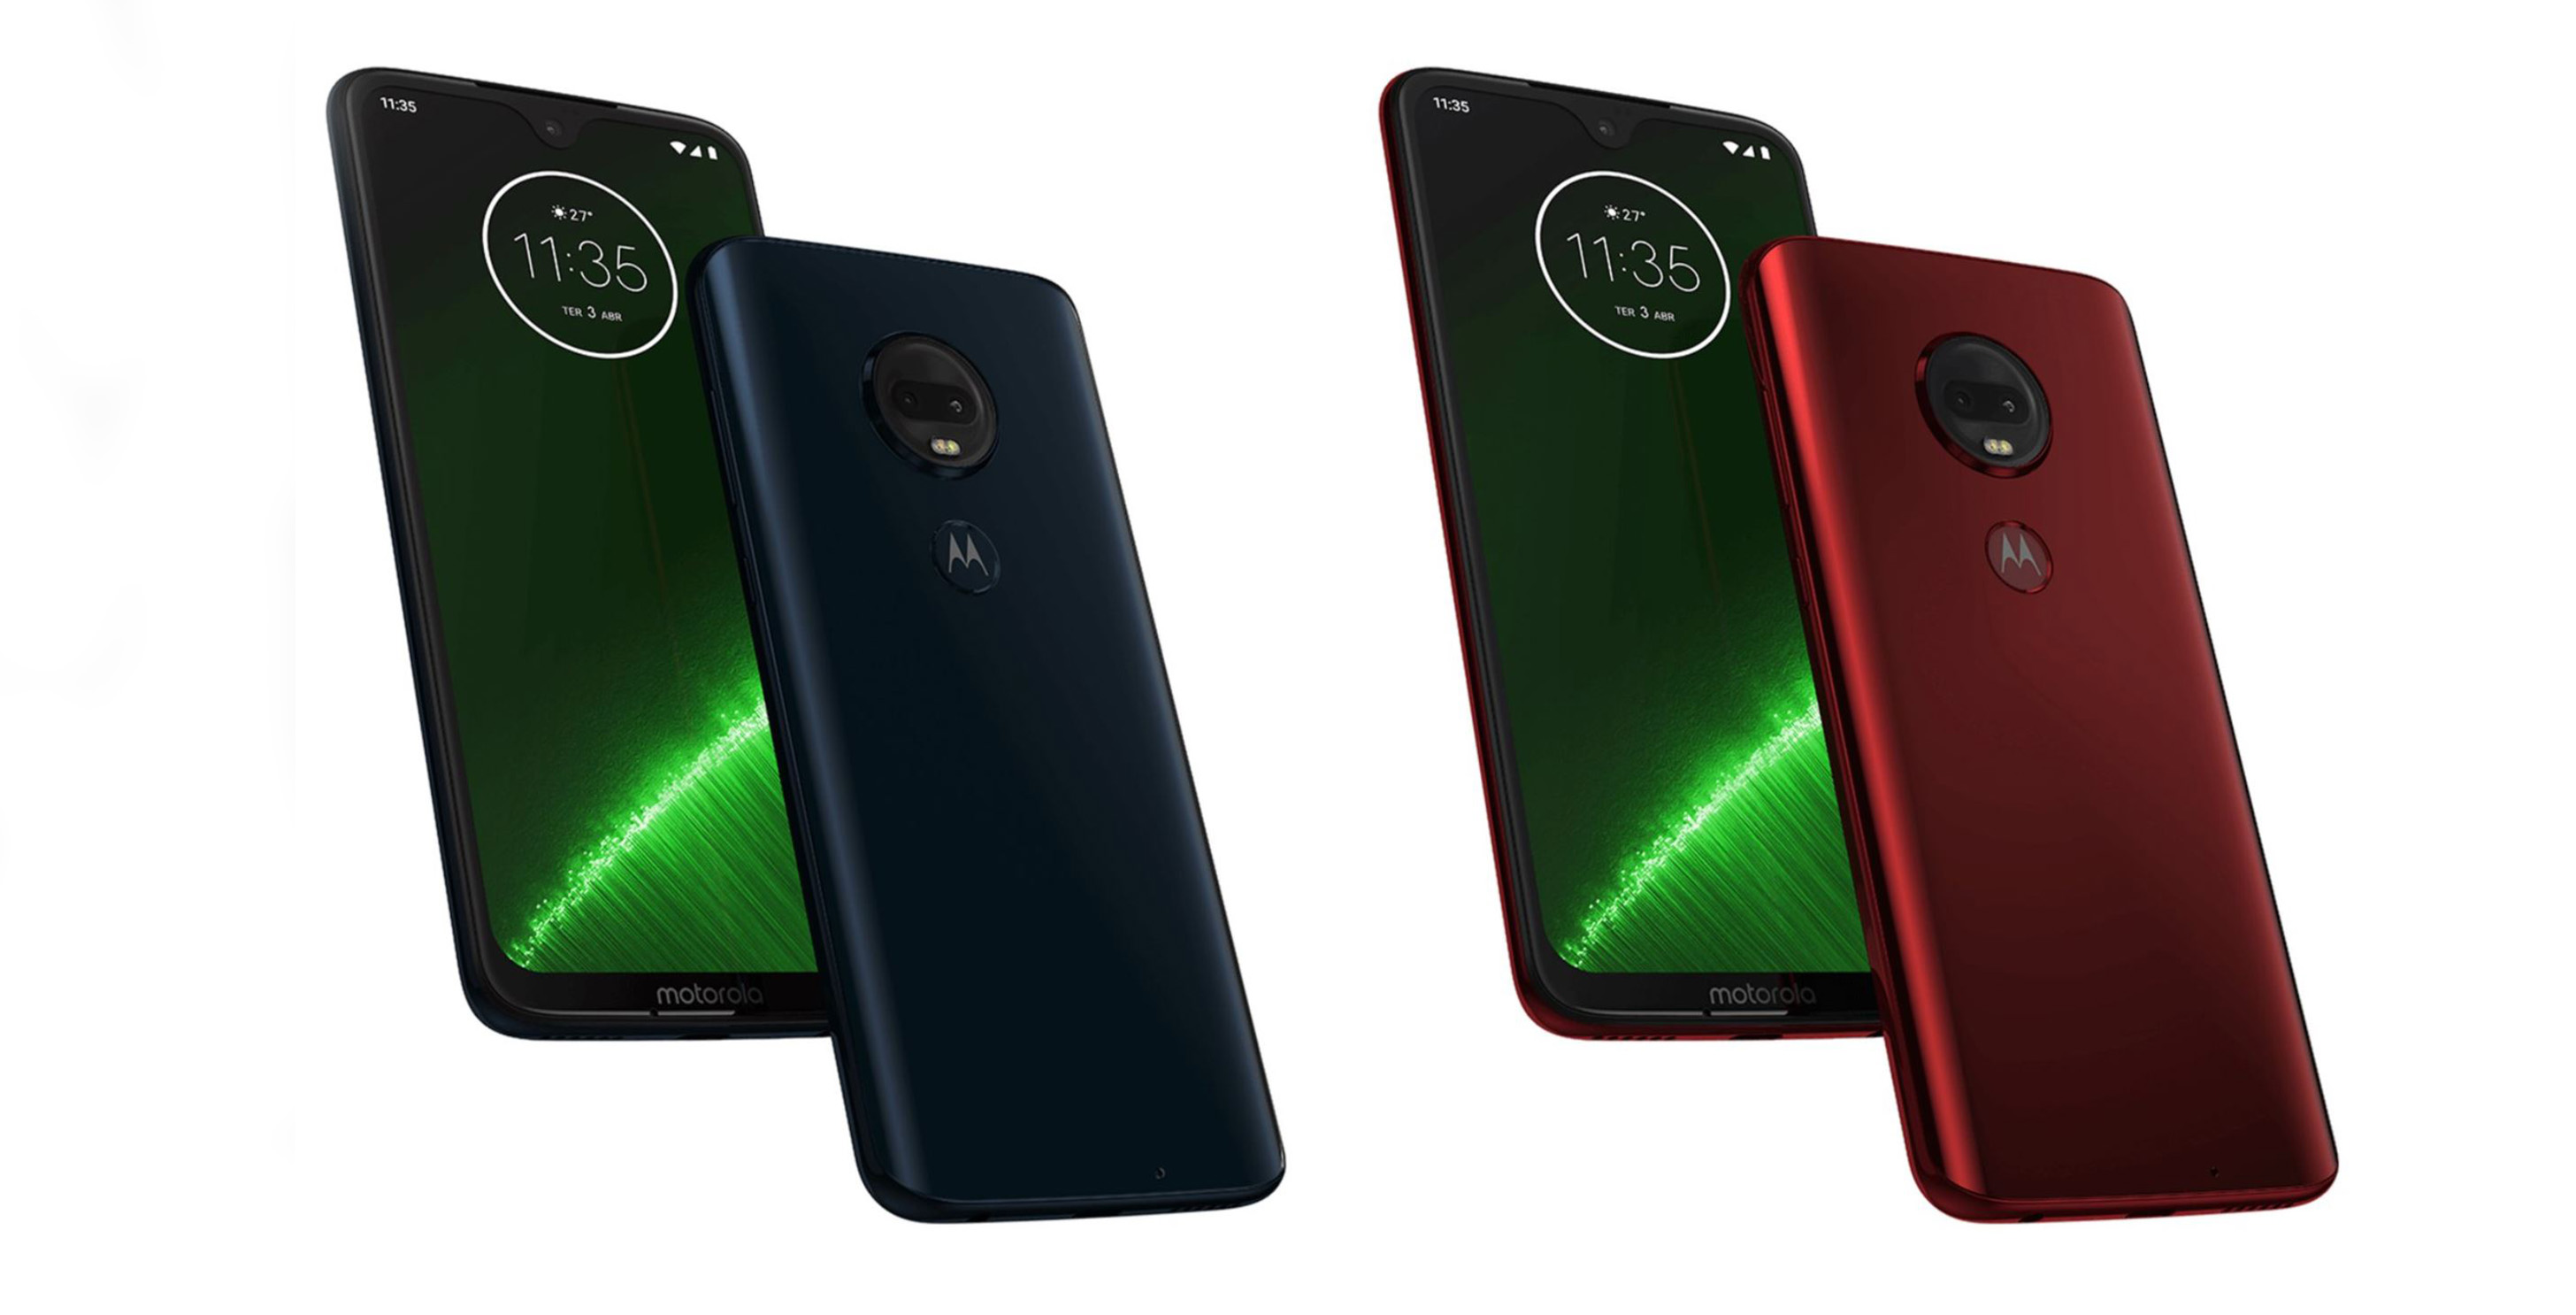 Press renders for the entire Moto G7 smartphone series have leaked